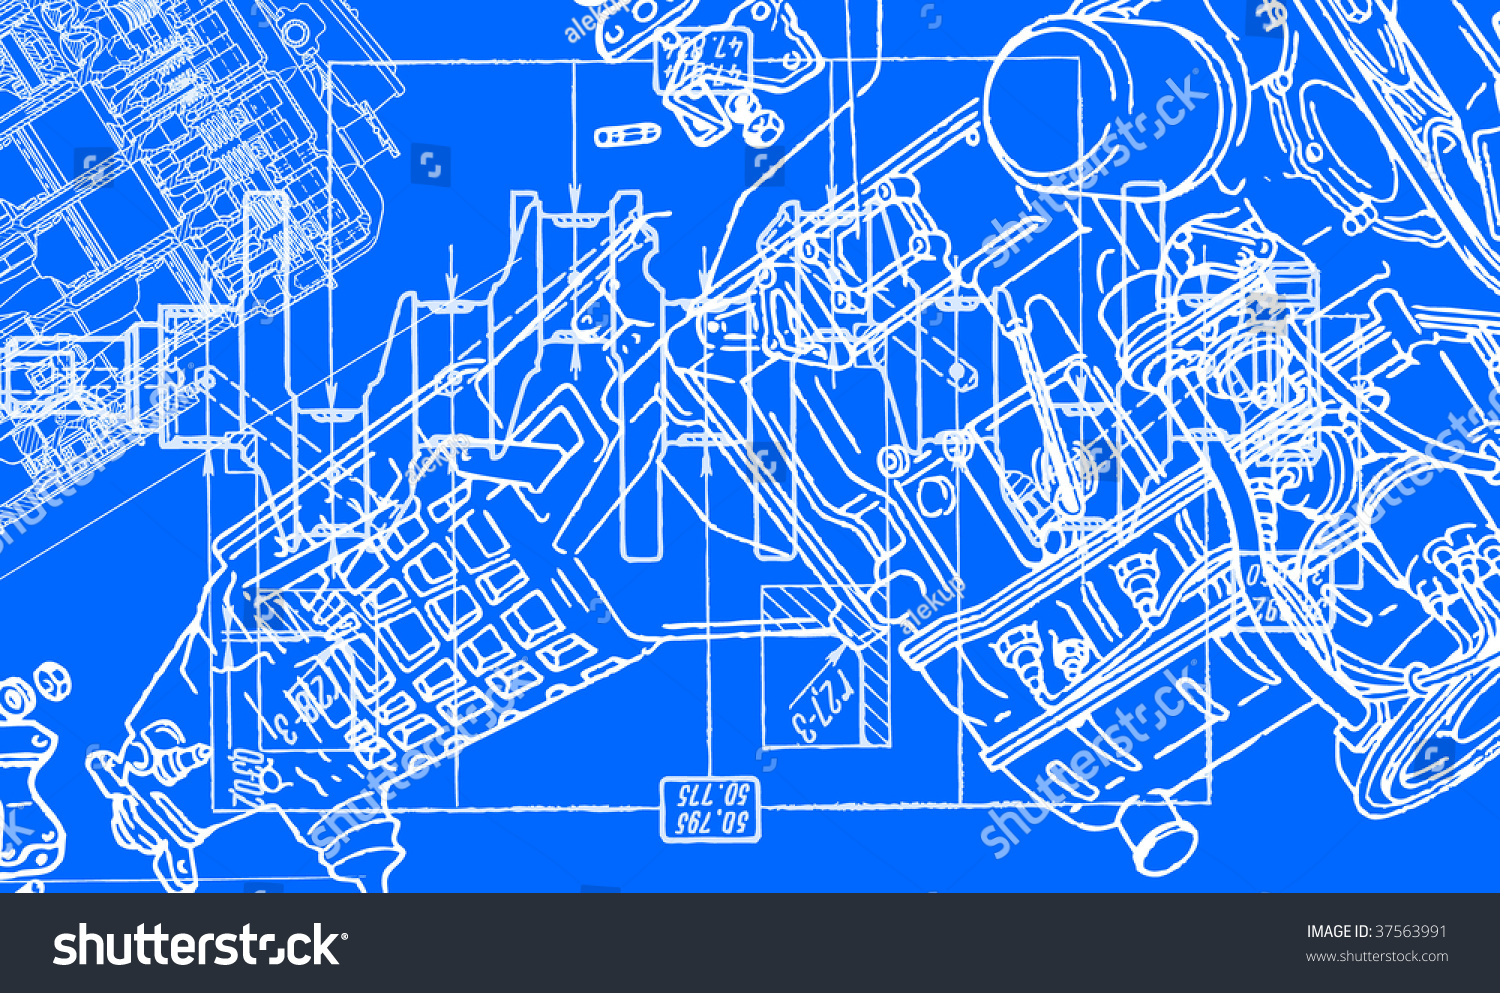 Technical Drawing Background 2 Stock Vector Illustration